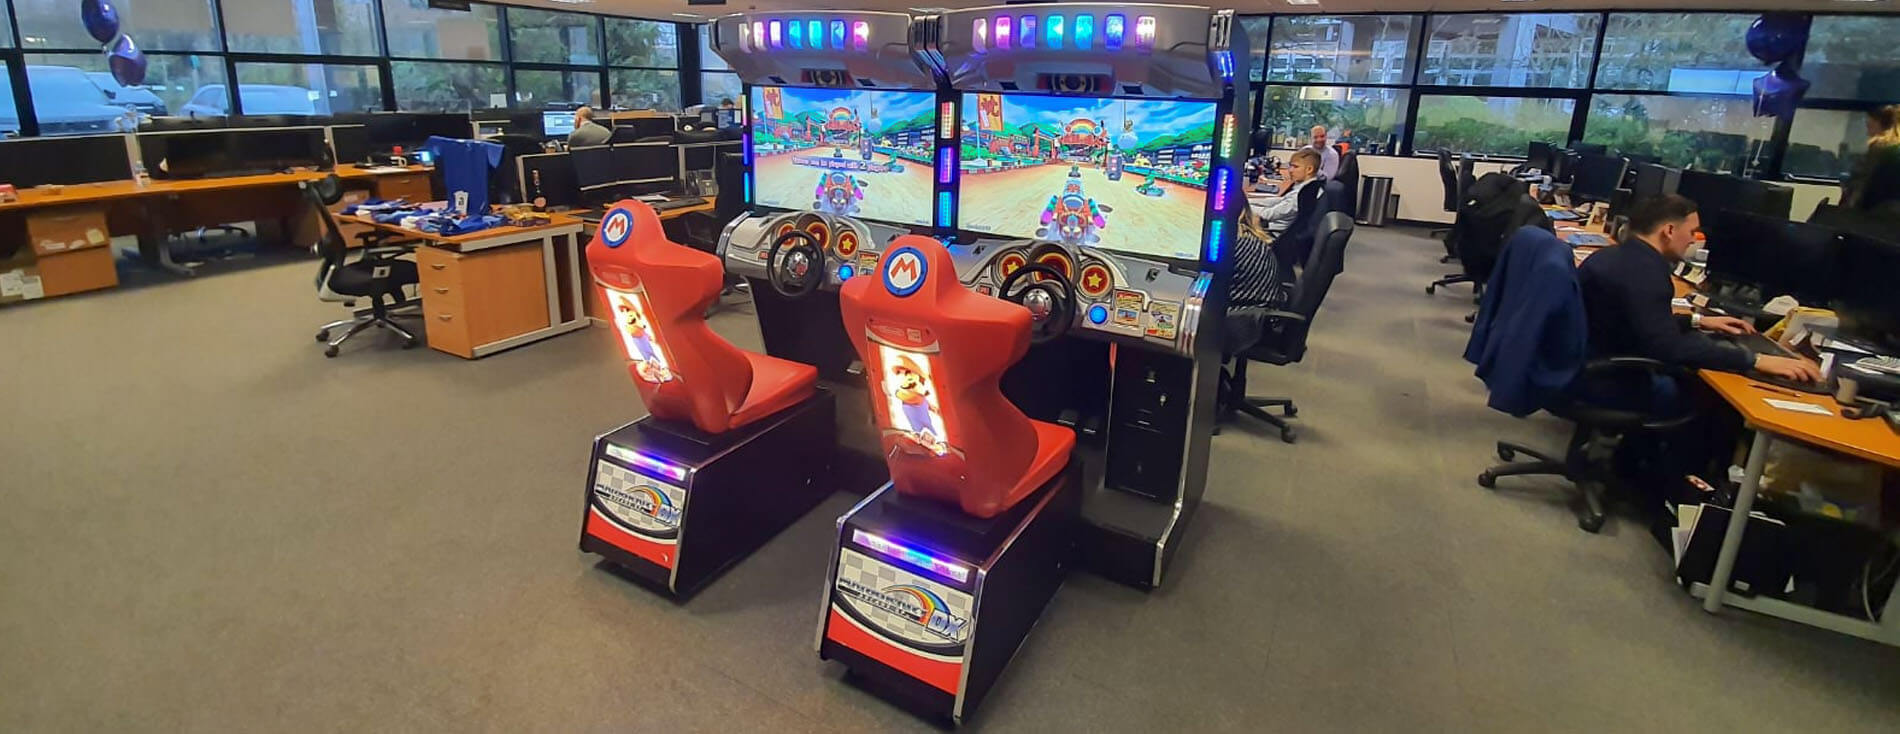 Mario Kart DX arcade machine hired for an office space